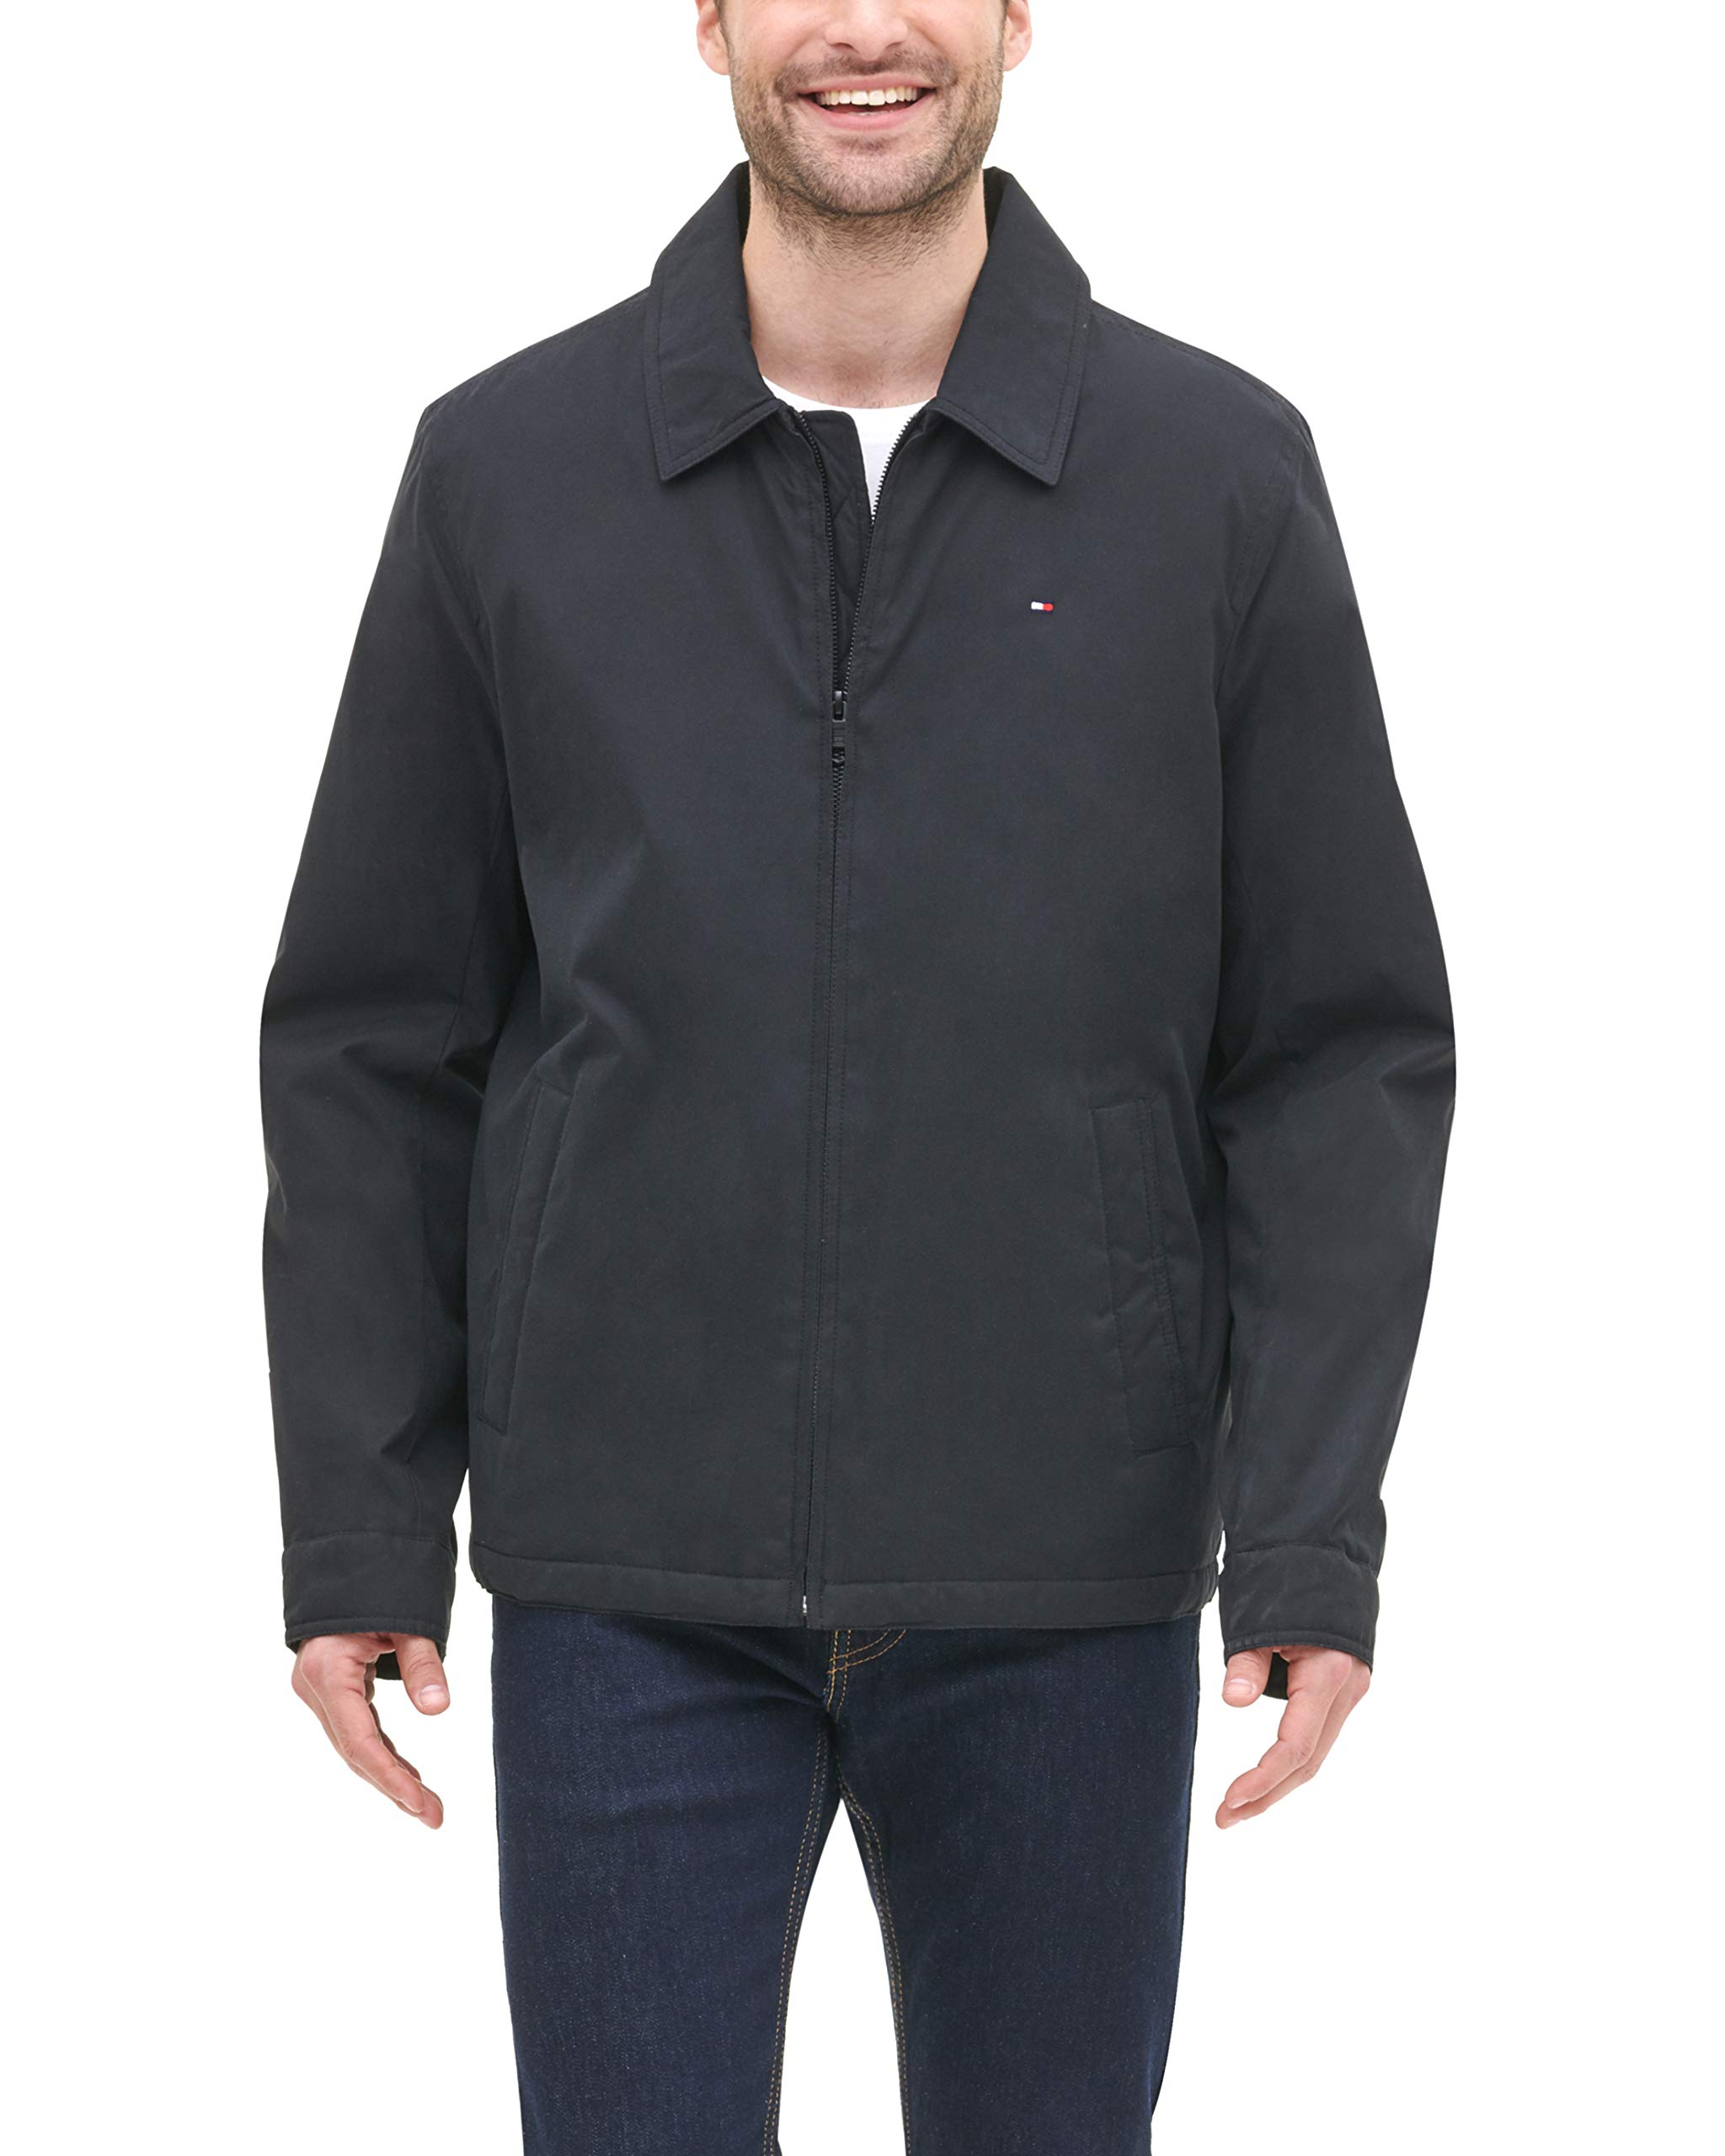 Tommy Hilfiger Men's Micro-Twill Open Bottom Zip Front Jacket, Black, Medium by Tommy Hilfiger